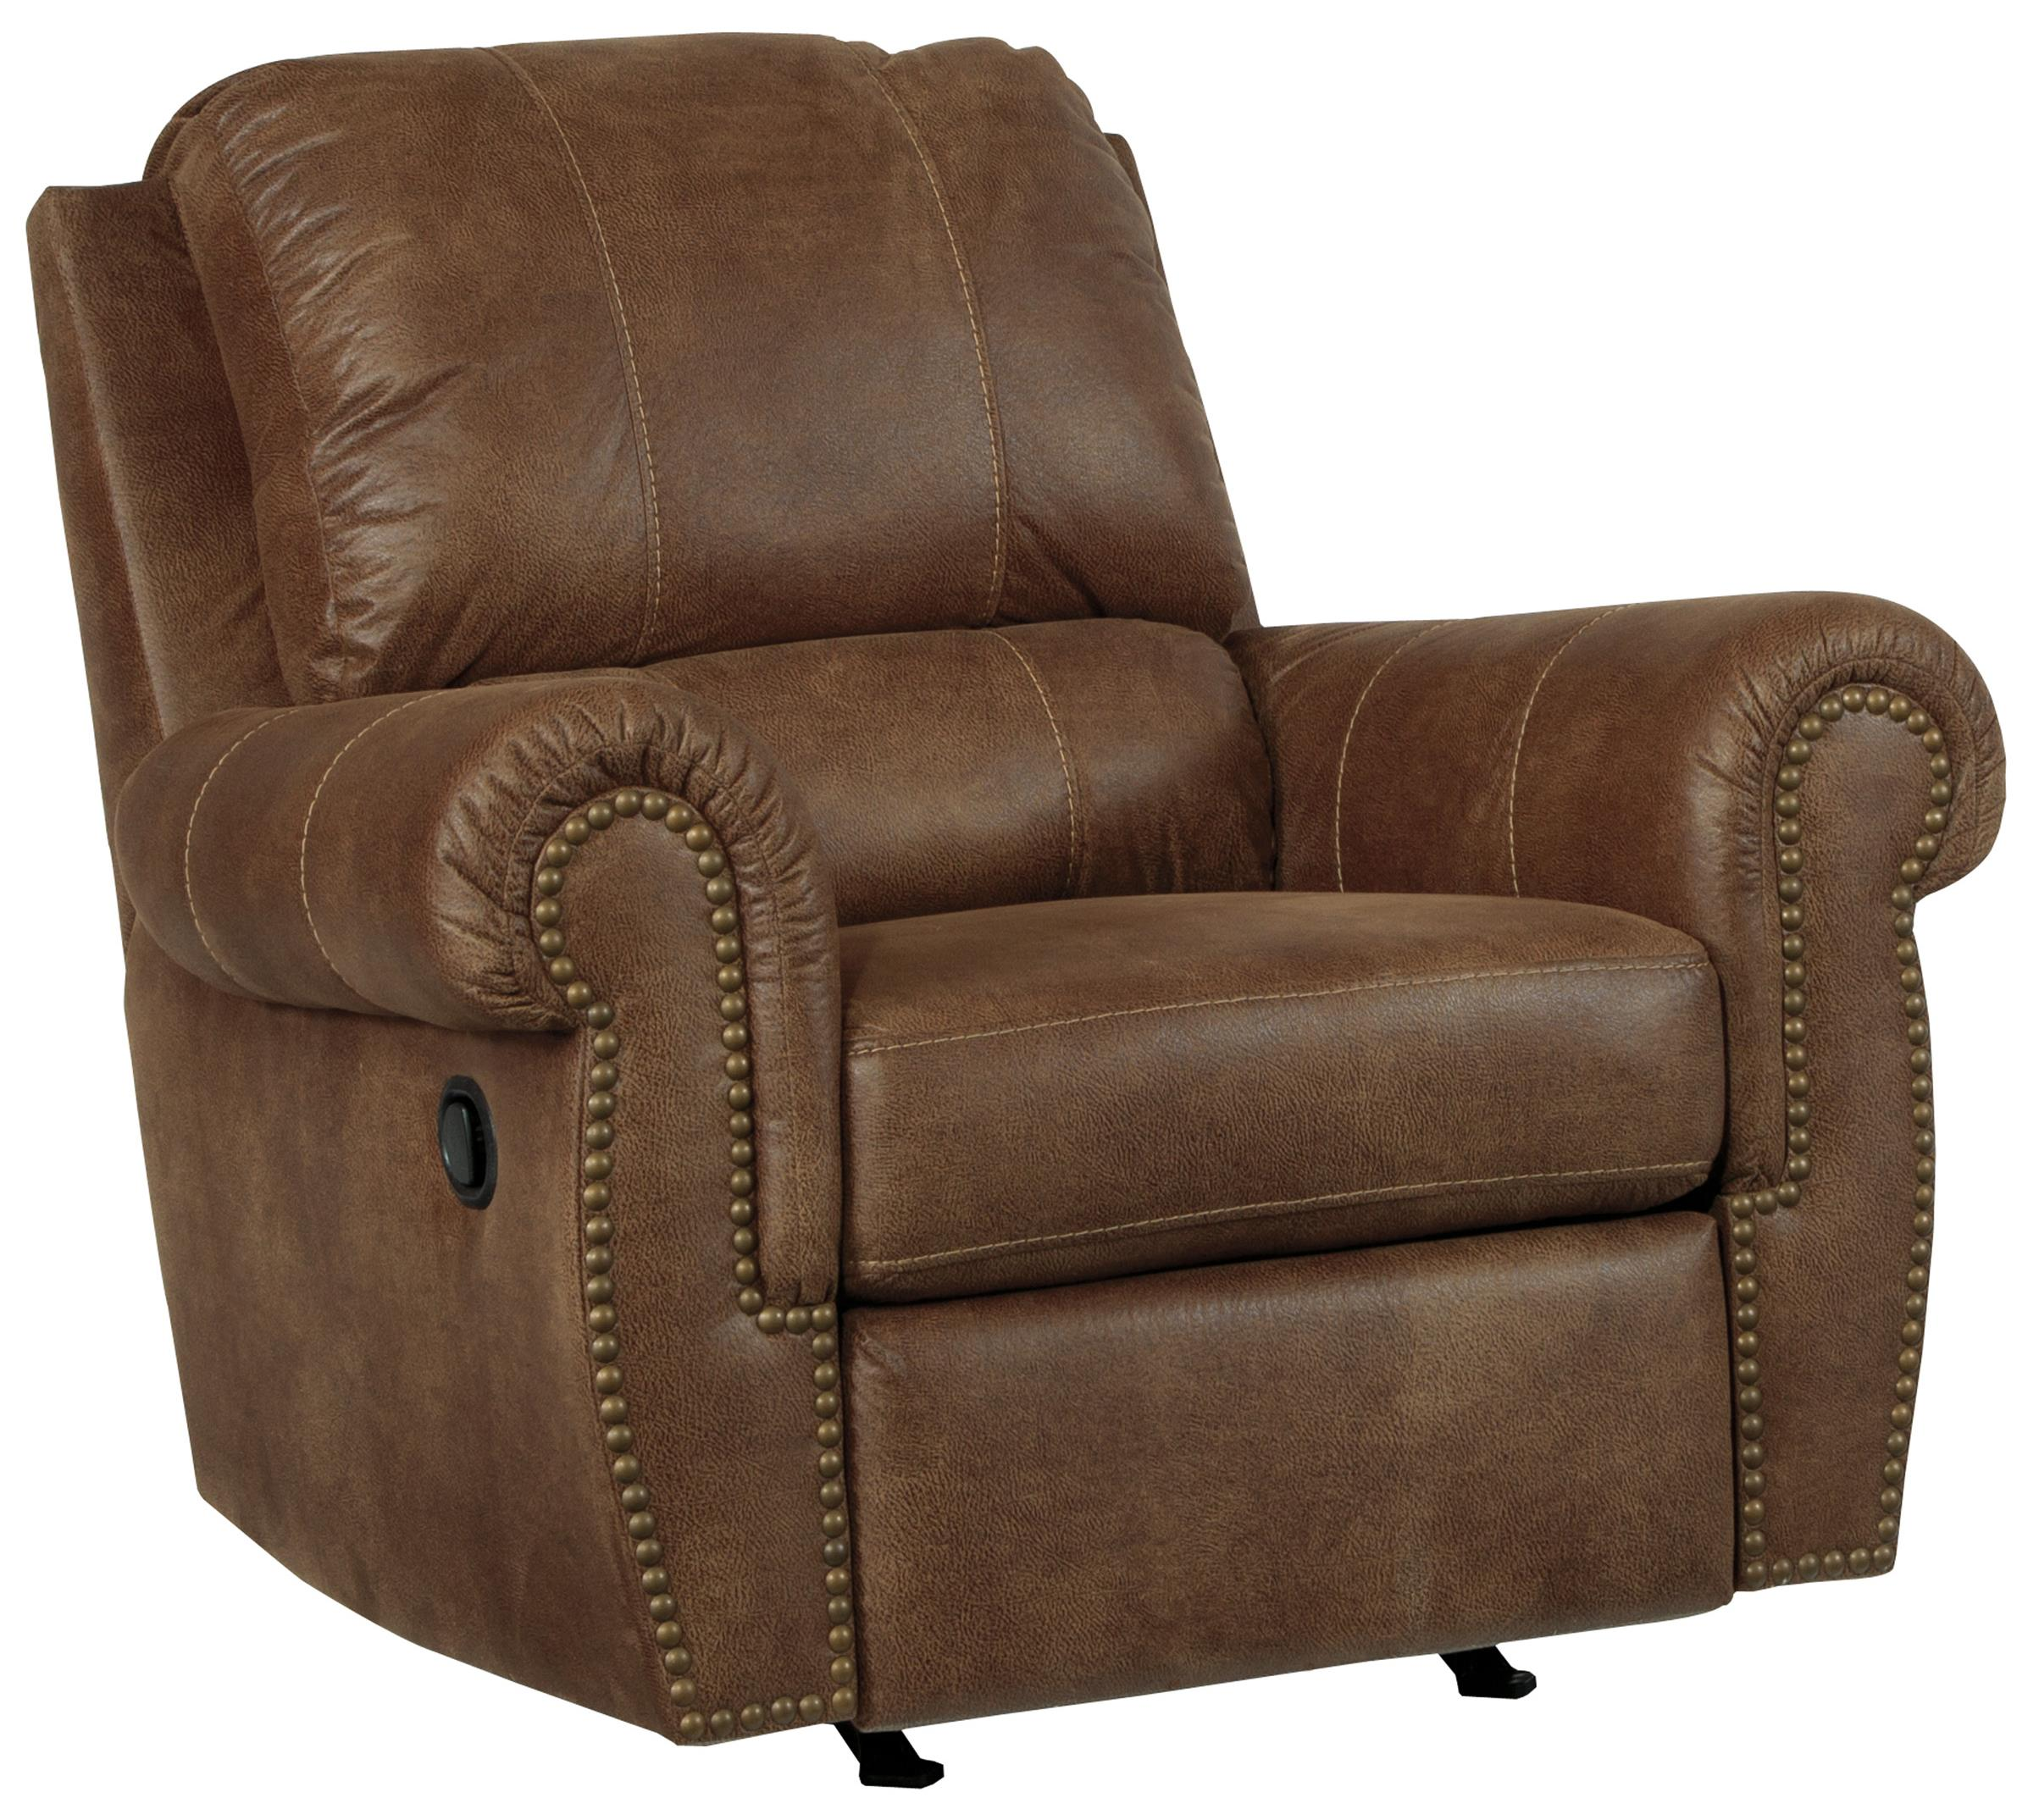 Benchcraft Burnsville Rocker Recliner - Item Number: 9720625